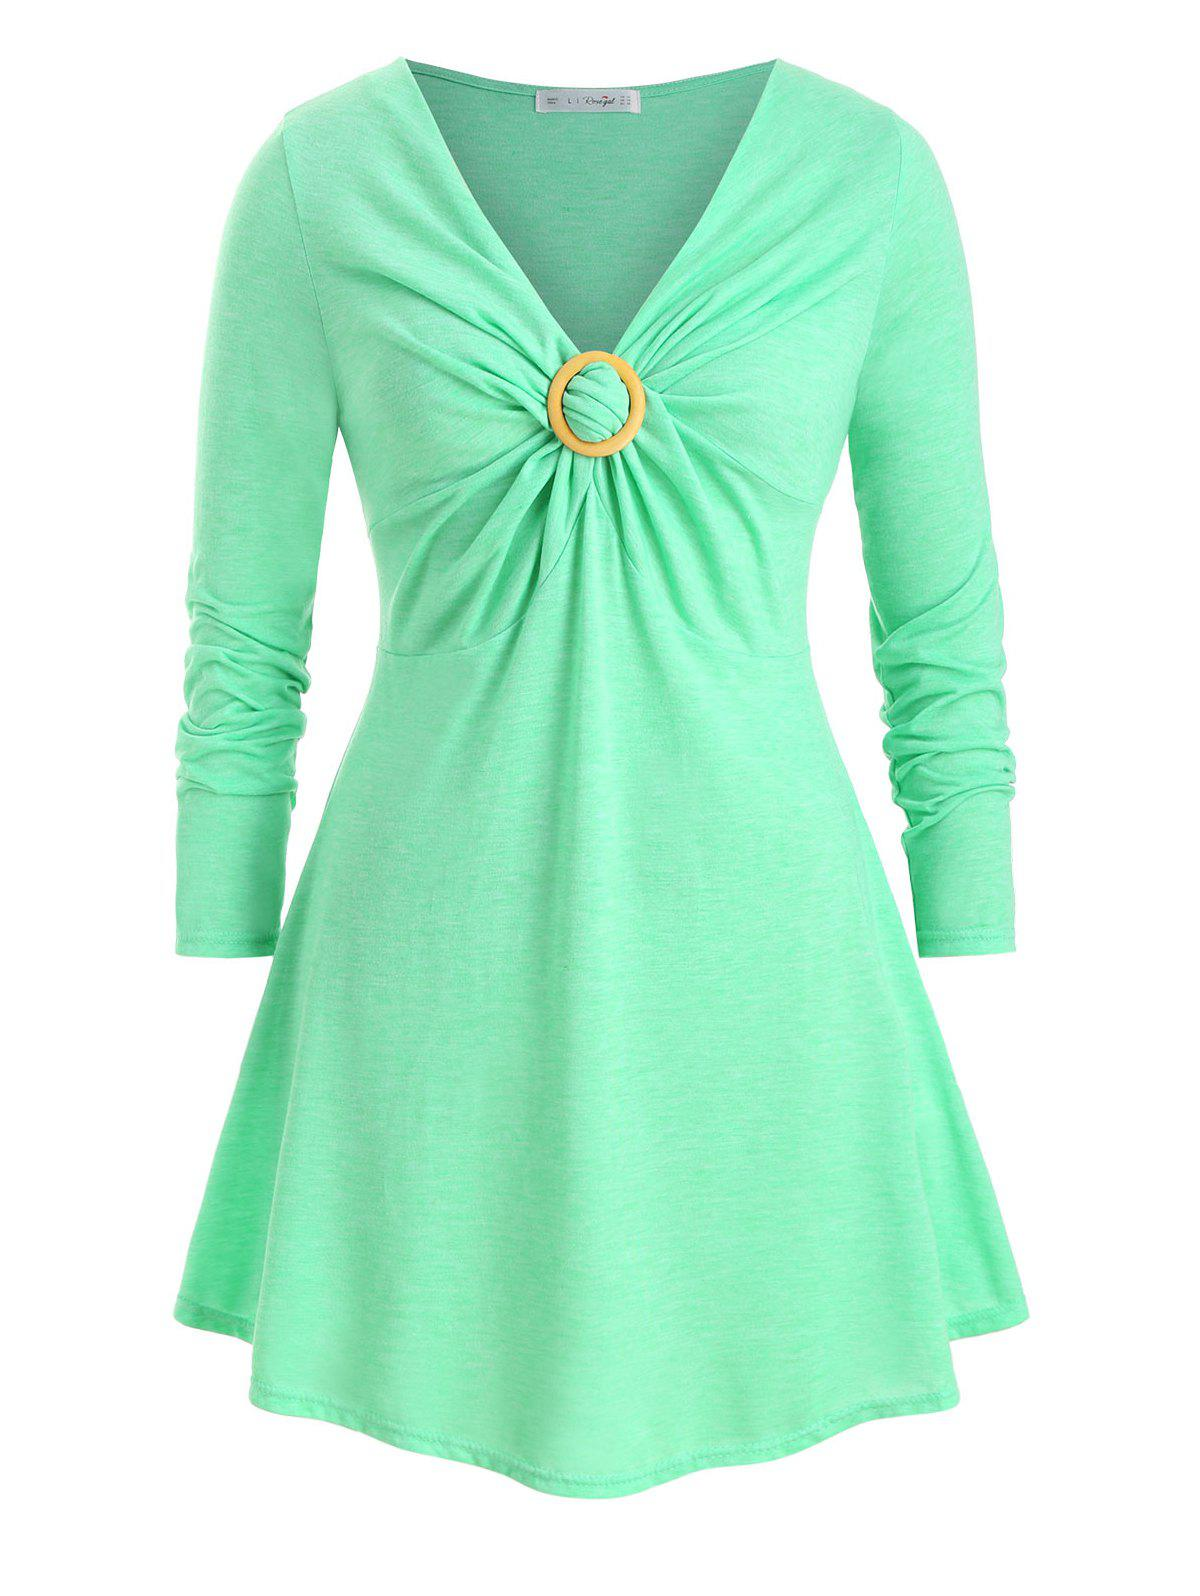 O Ring Twisted Front V Neck Plus Size Longline Top - GREEN 4X